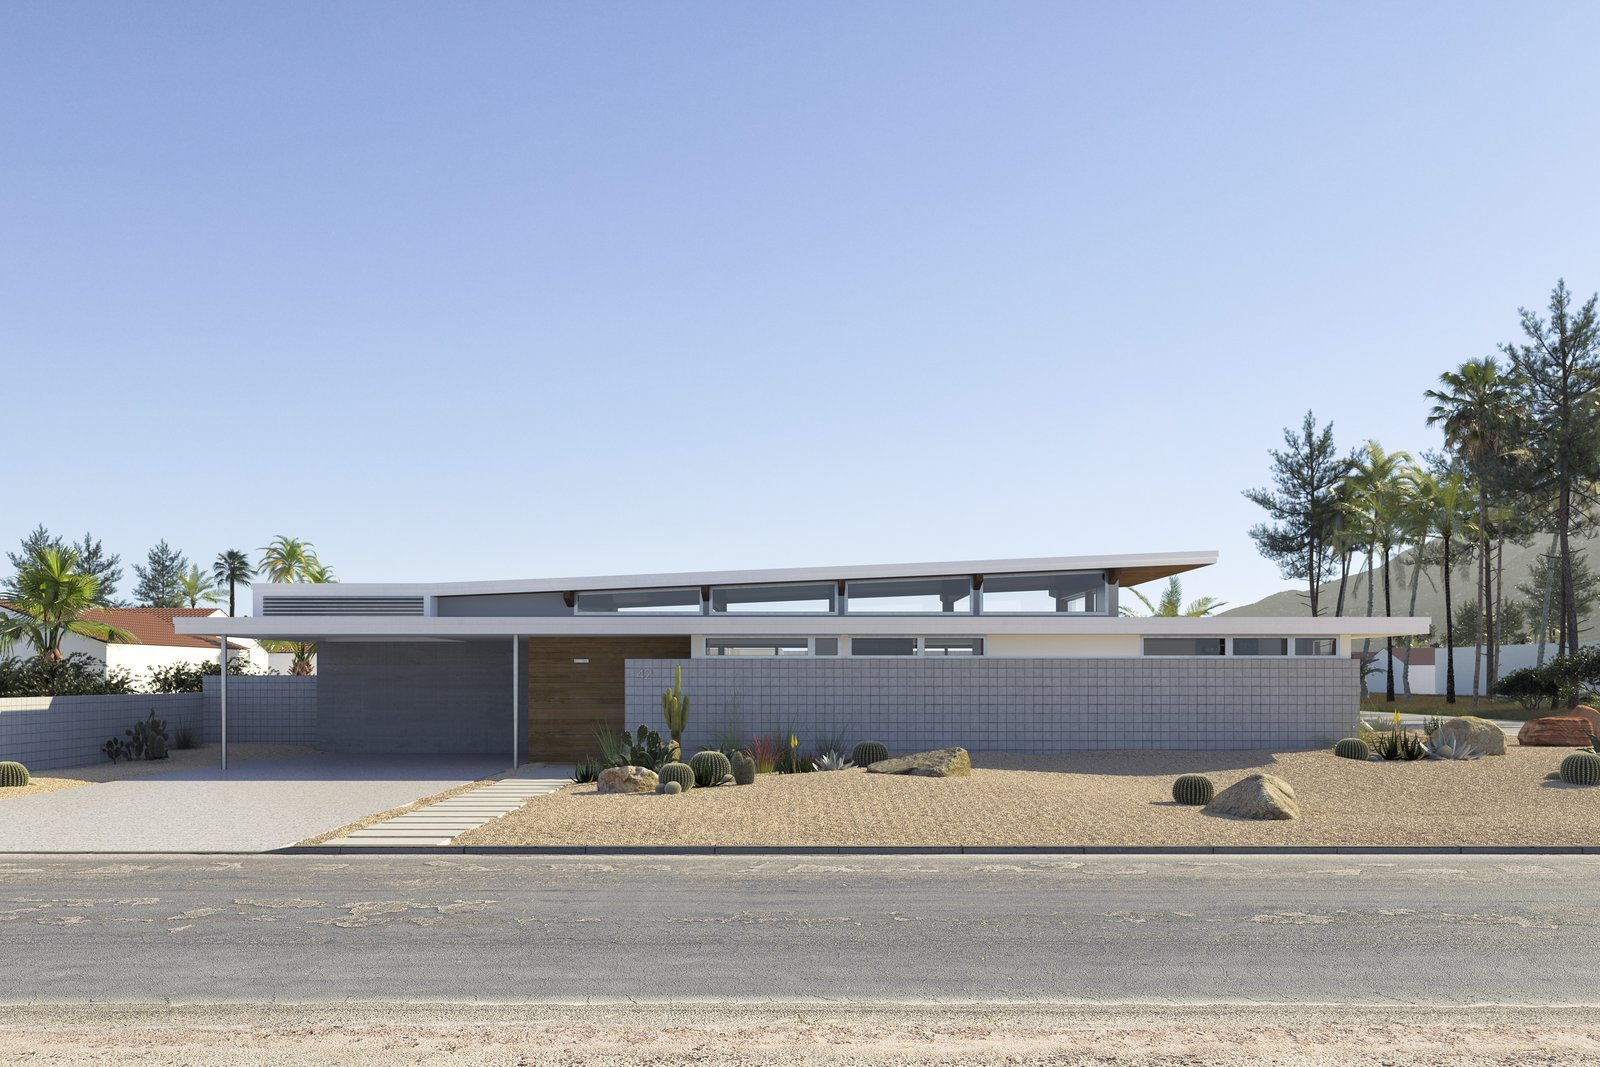 Dwell x Turkel Design: Breaking Ground in Palm Springs - Photo 1 of 4